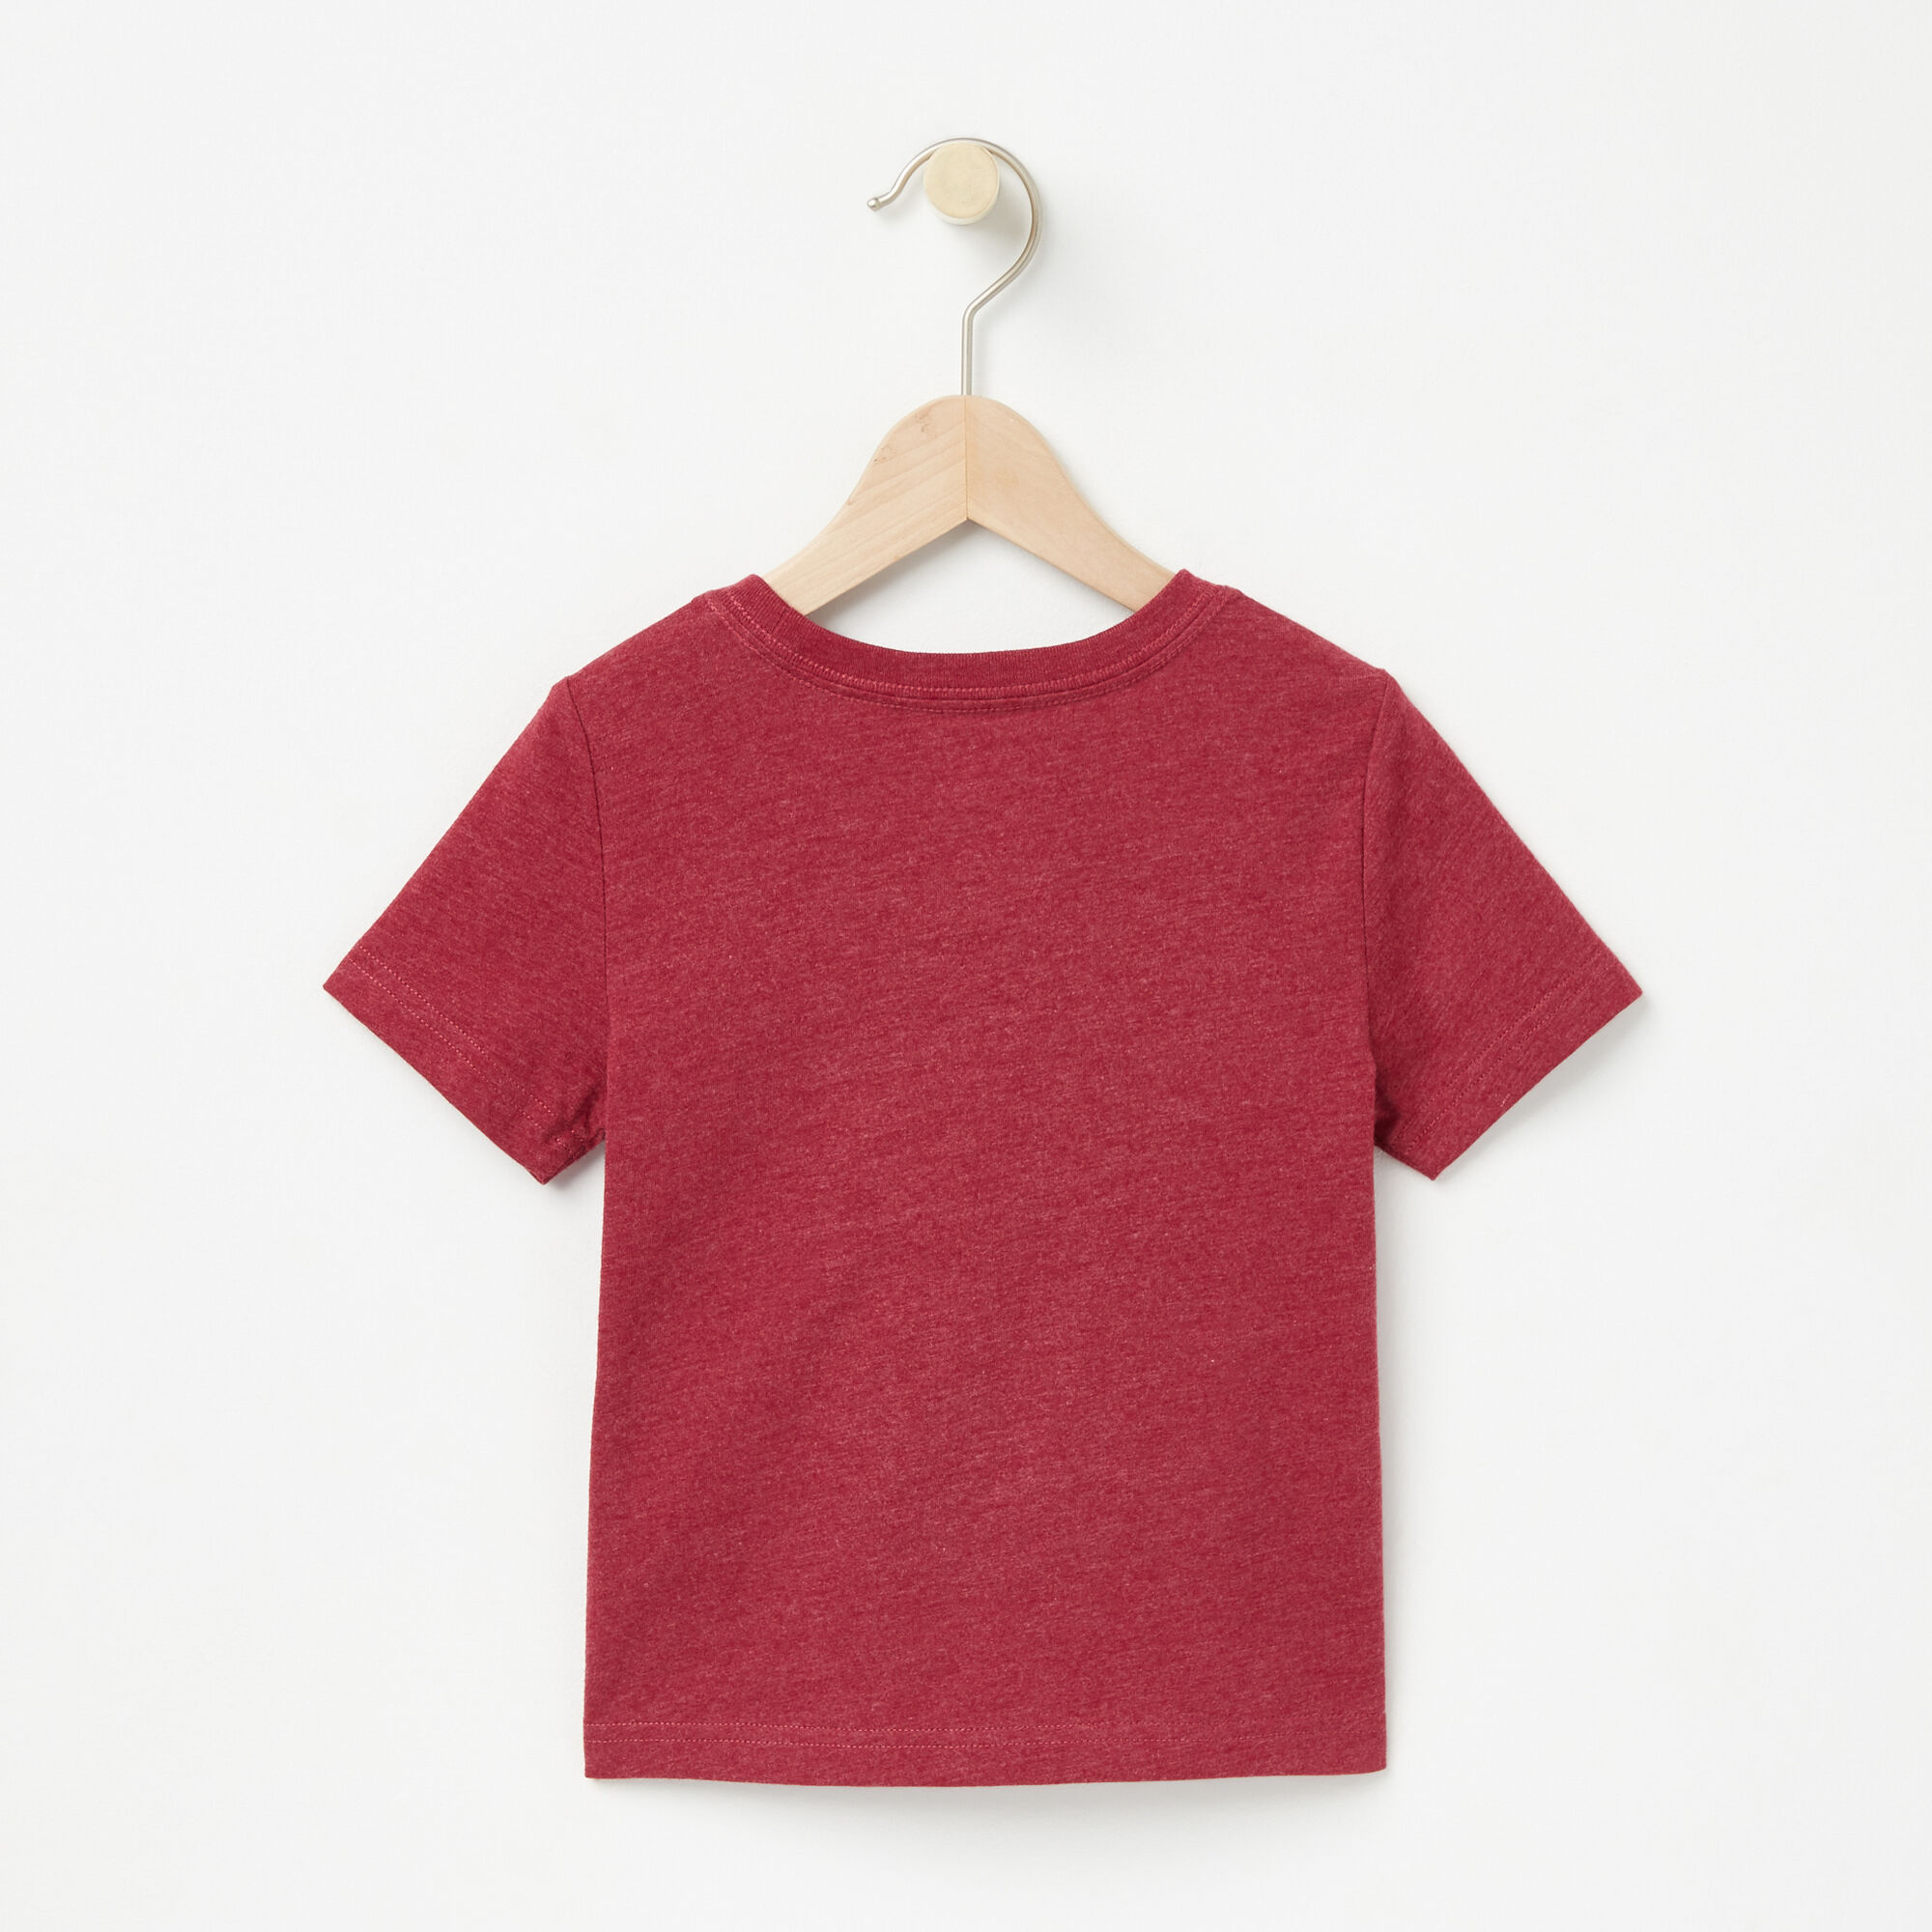 Toddler Laurier T-shirt